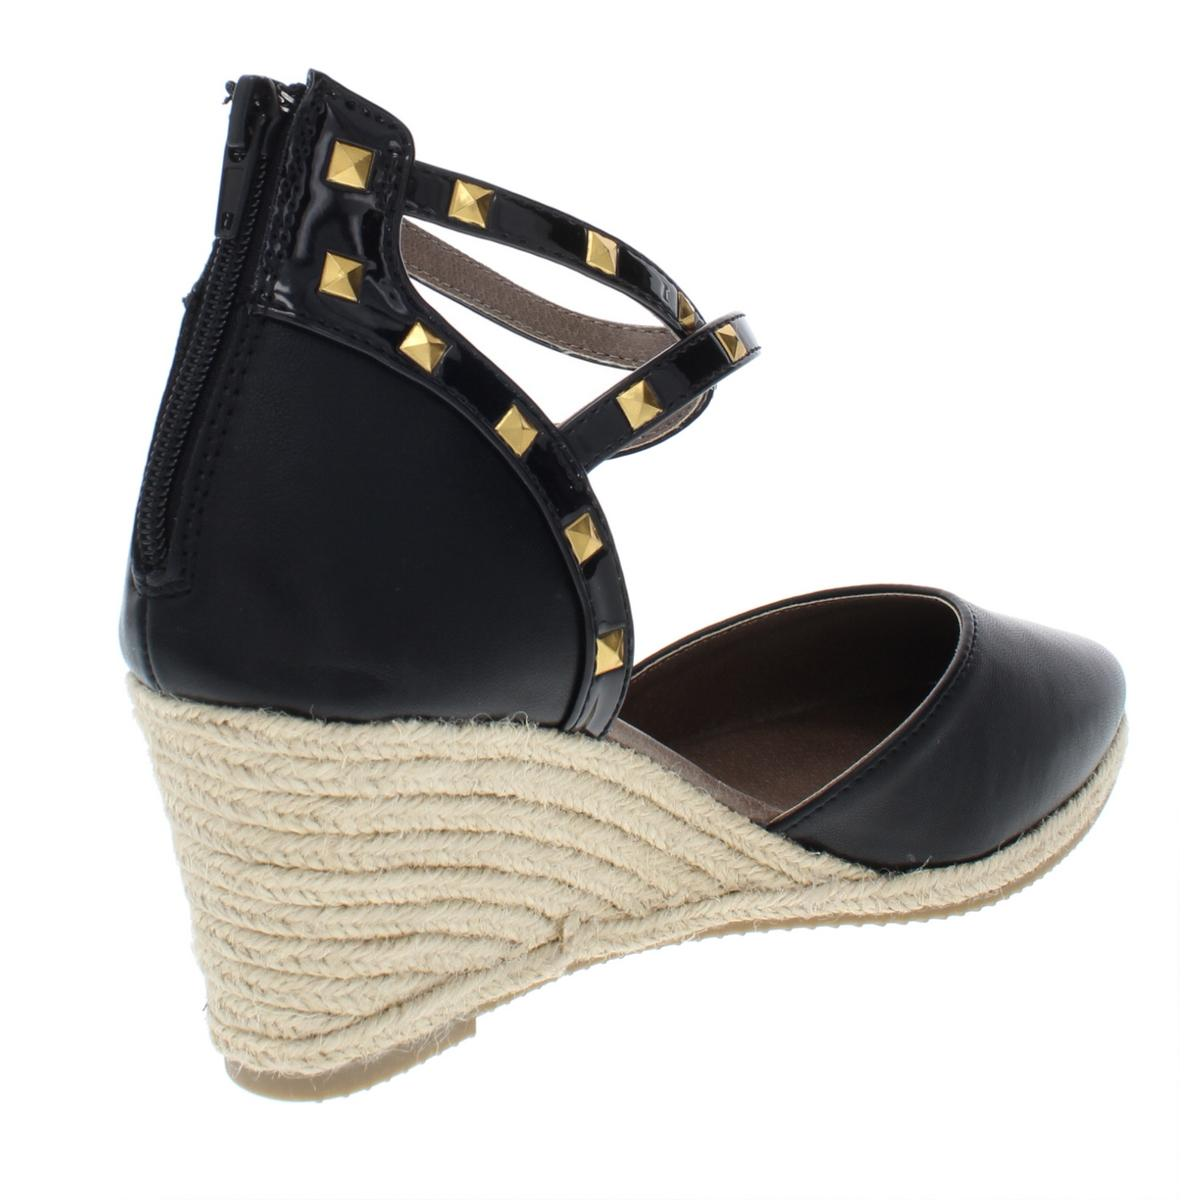 0be4ad093d6 Rialto Womens Campari Studded Espadrille Wedge Sandals Shoes BHFO ...